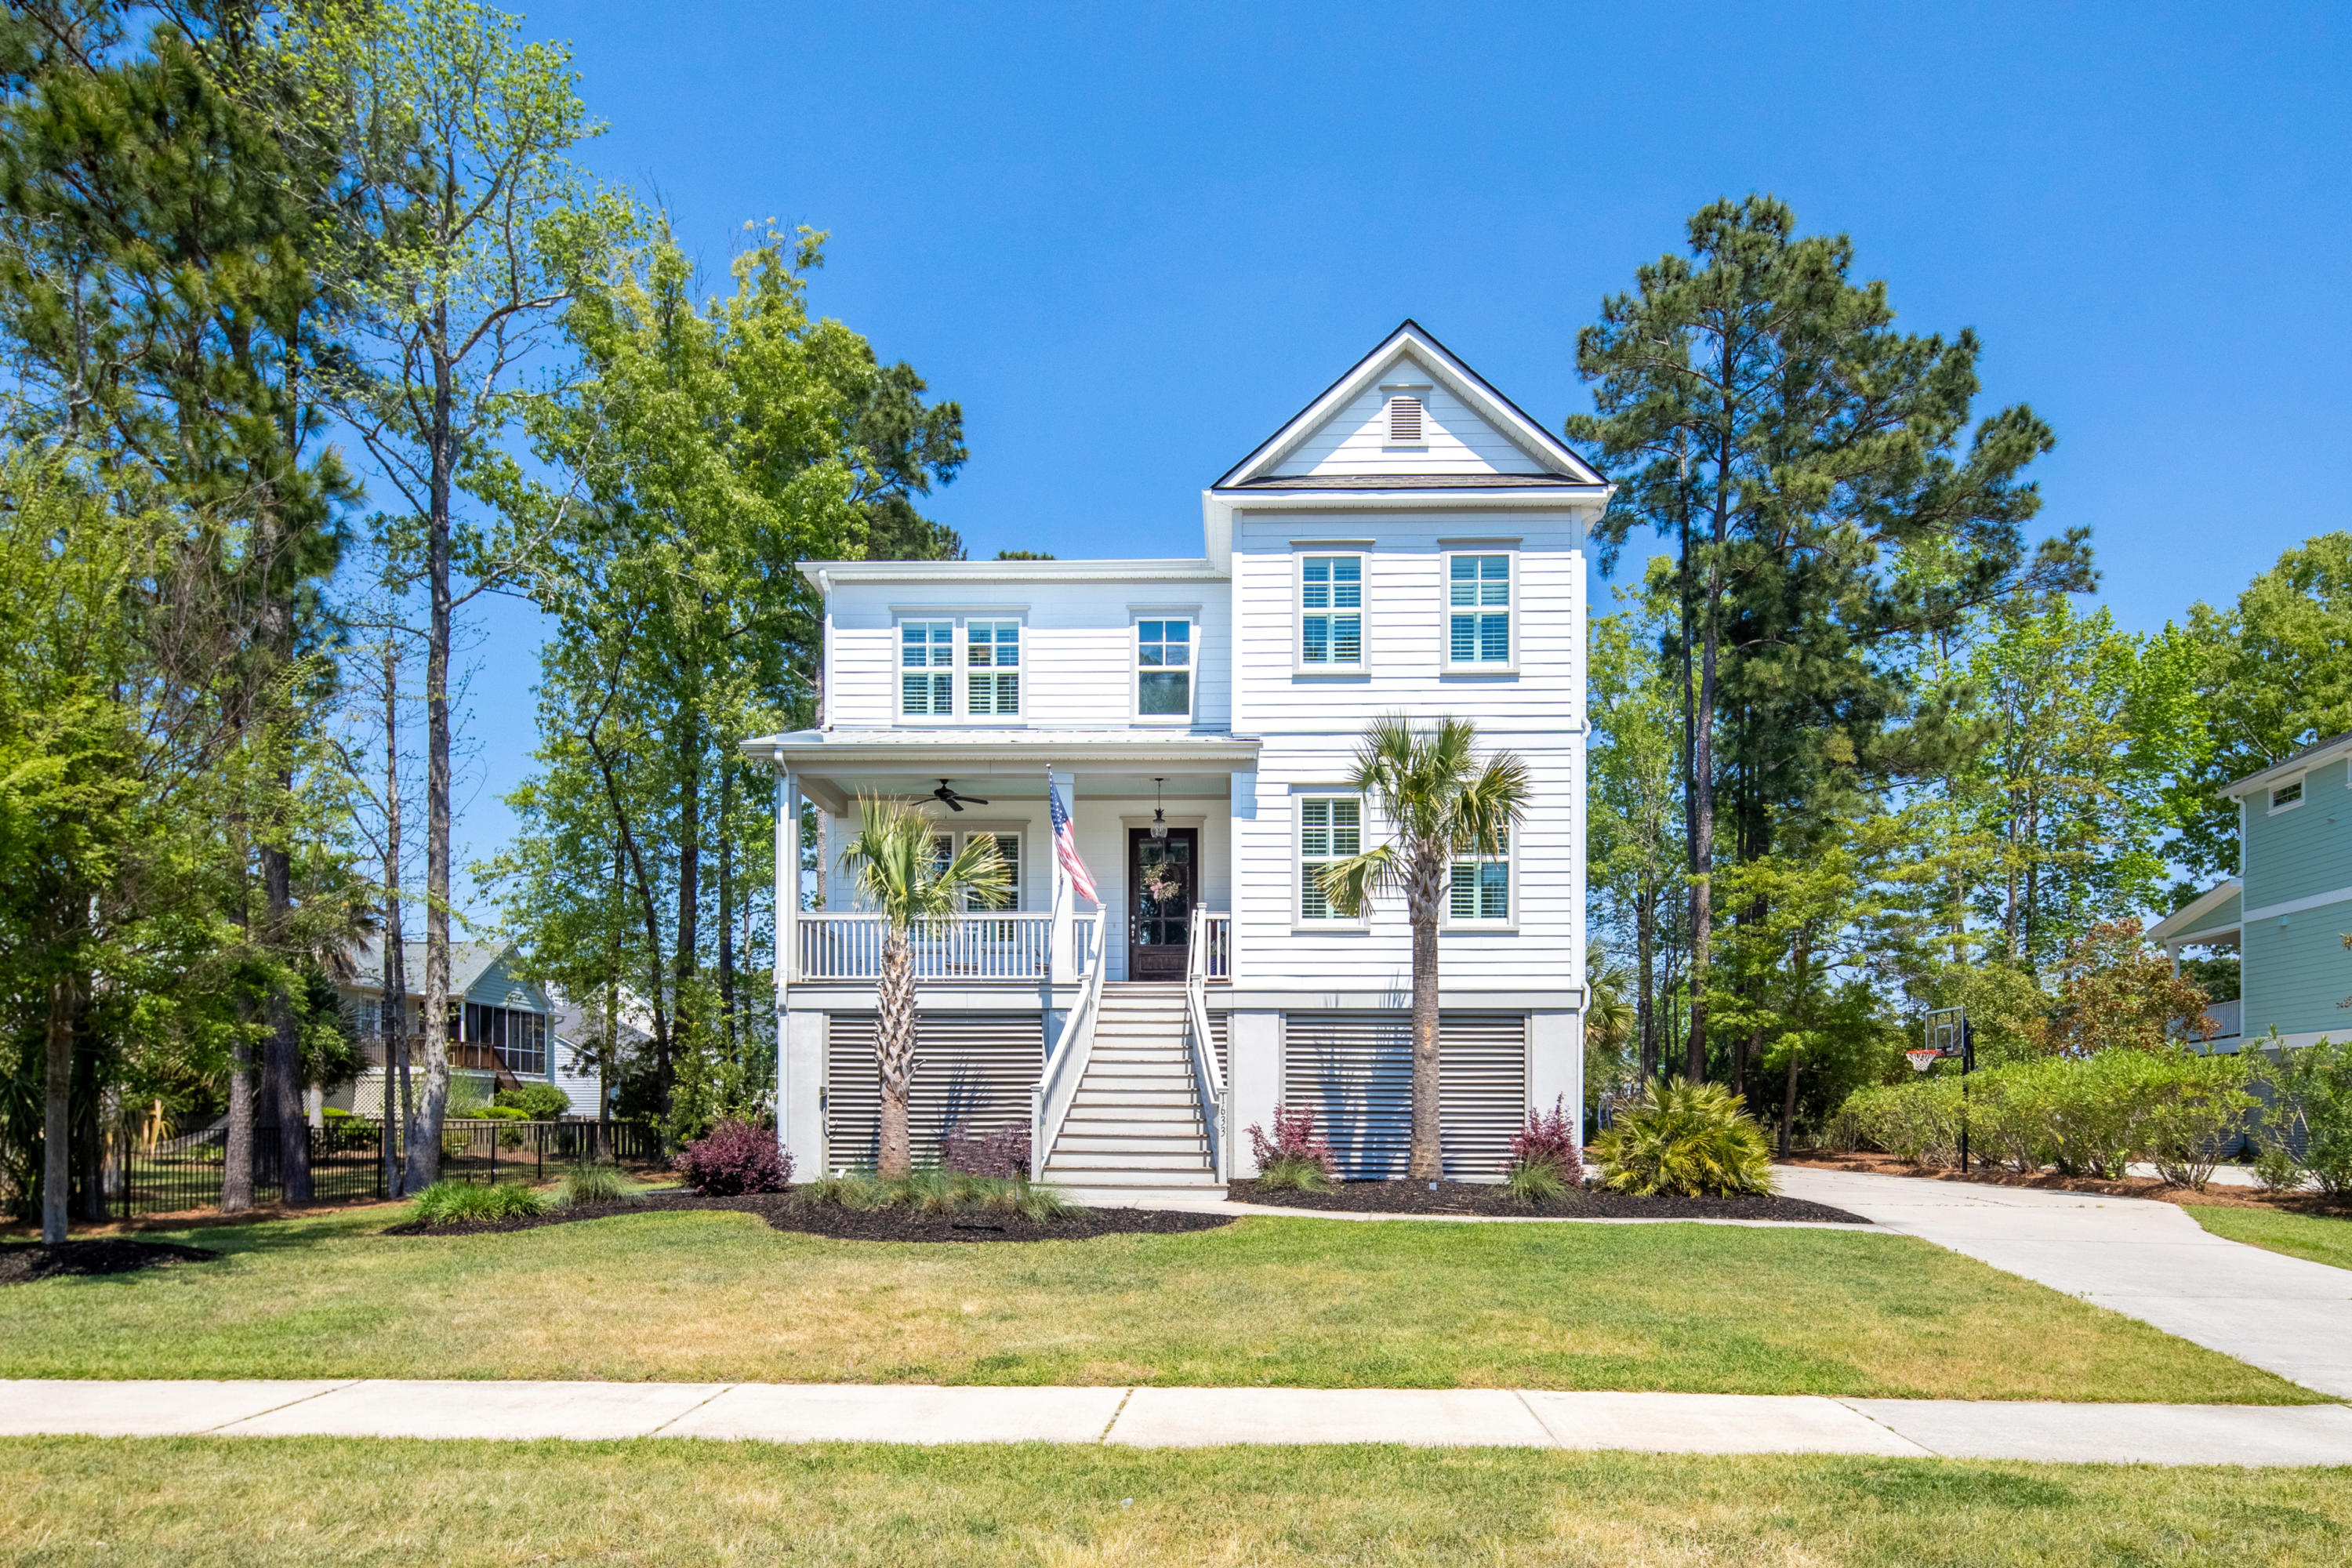 Rivertowne Country Club Homes For Sale - 1633 Rivertowne Country Club, Mount Pleasant, SC - 33